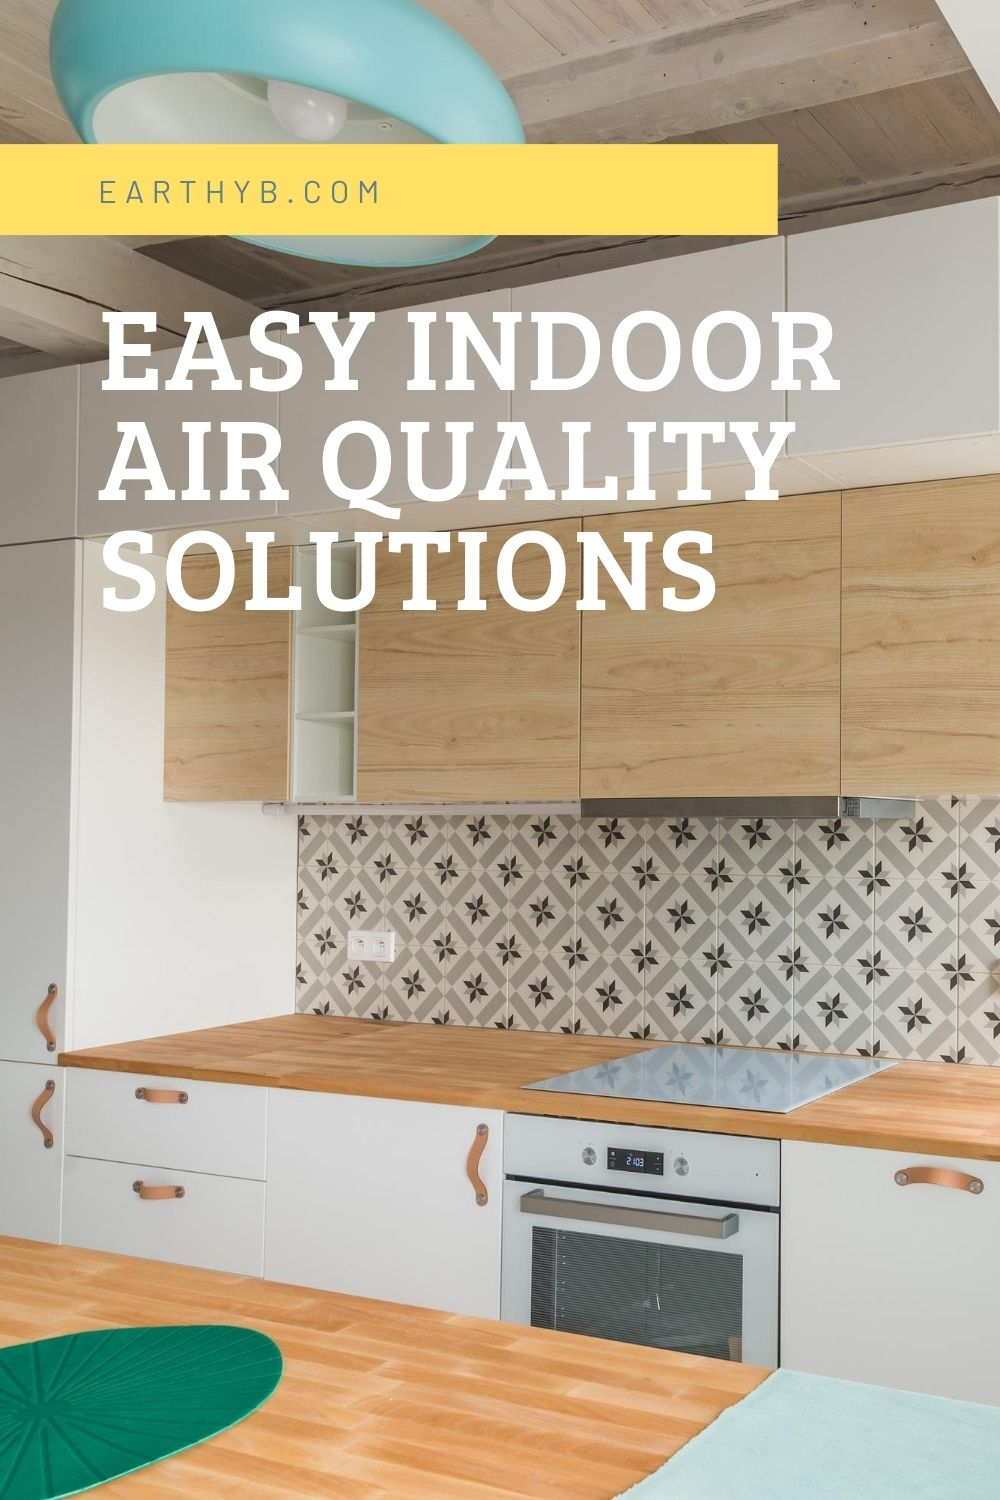 """Kitchen with electric cooktop and hood vent inside a kitchen cabinet with text overlay that reads """"Easy Indoor Air Quality Solutions"""""""